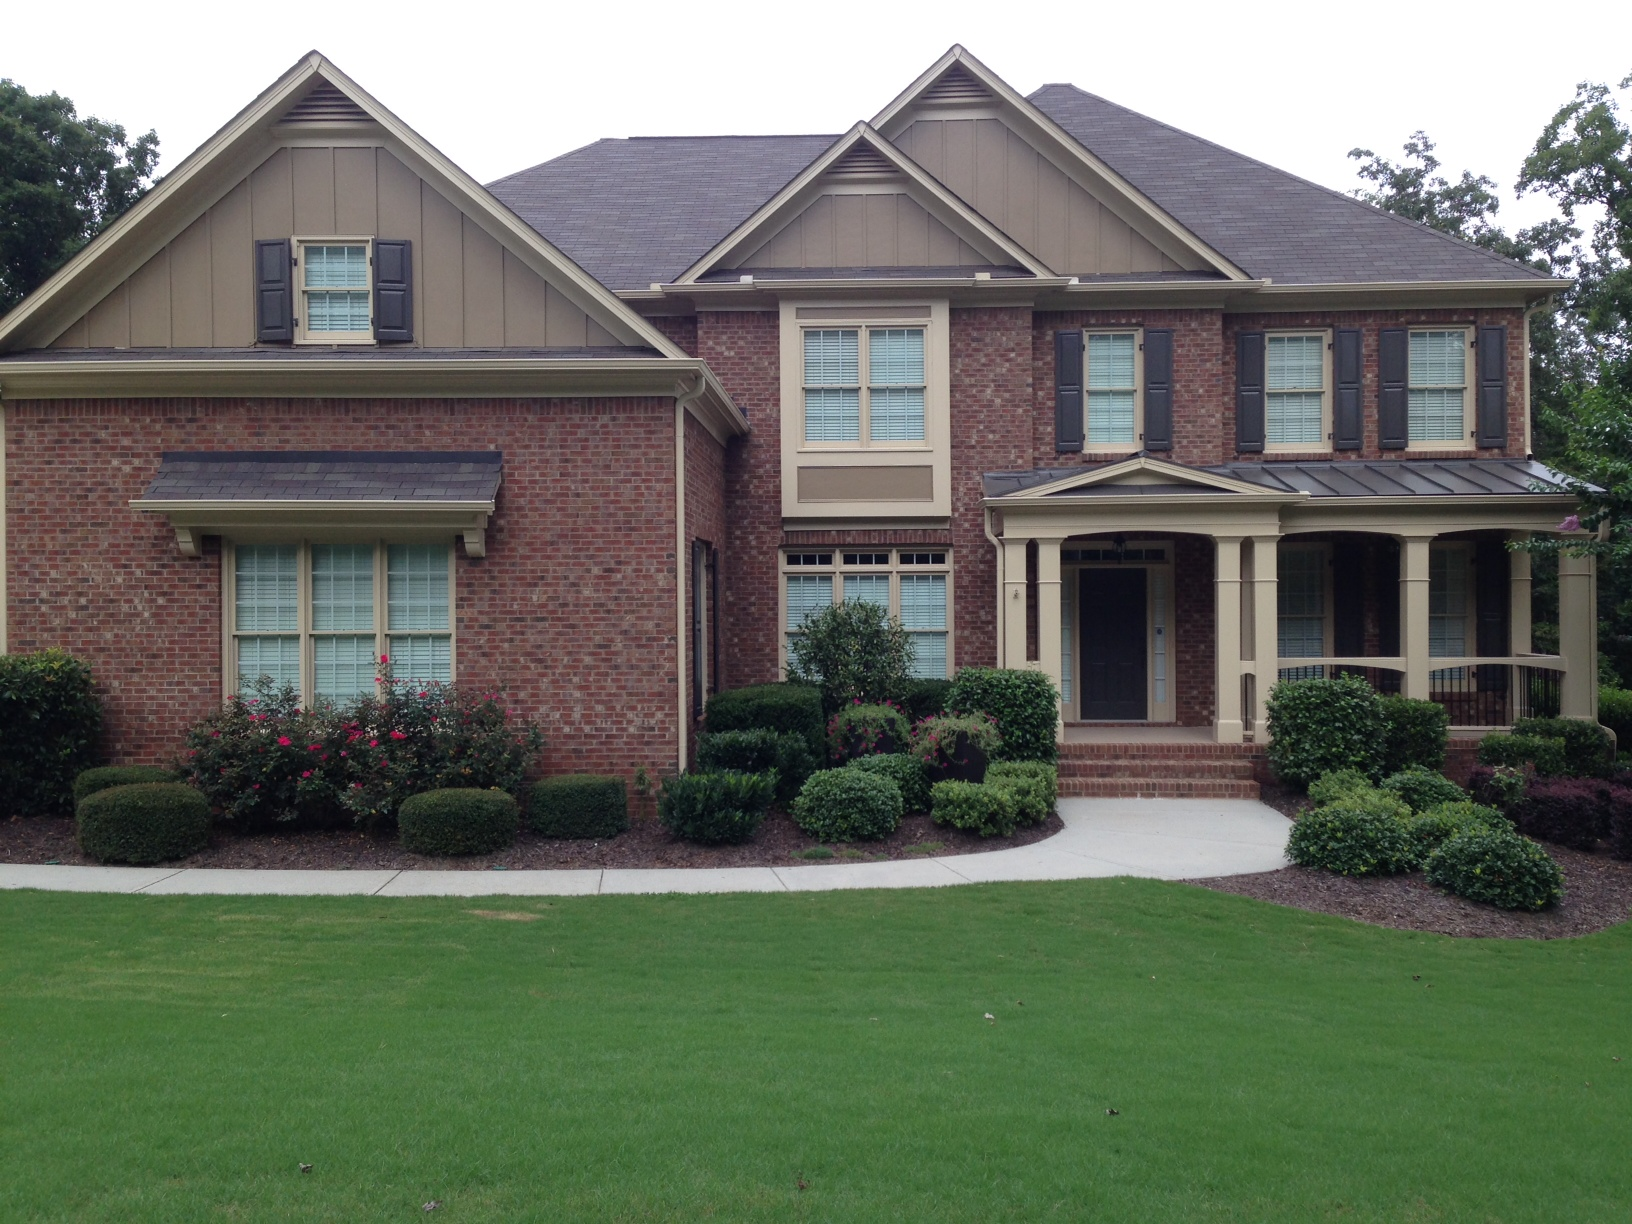 Phenomenal How To Select Exterior Paint Colors Atlanta Home Improvement Largest Home Design Picture Inspirations Pitcheantrous